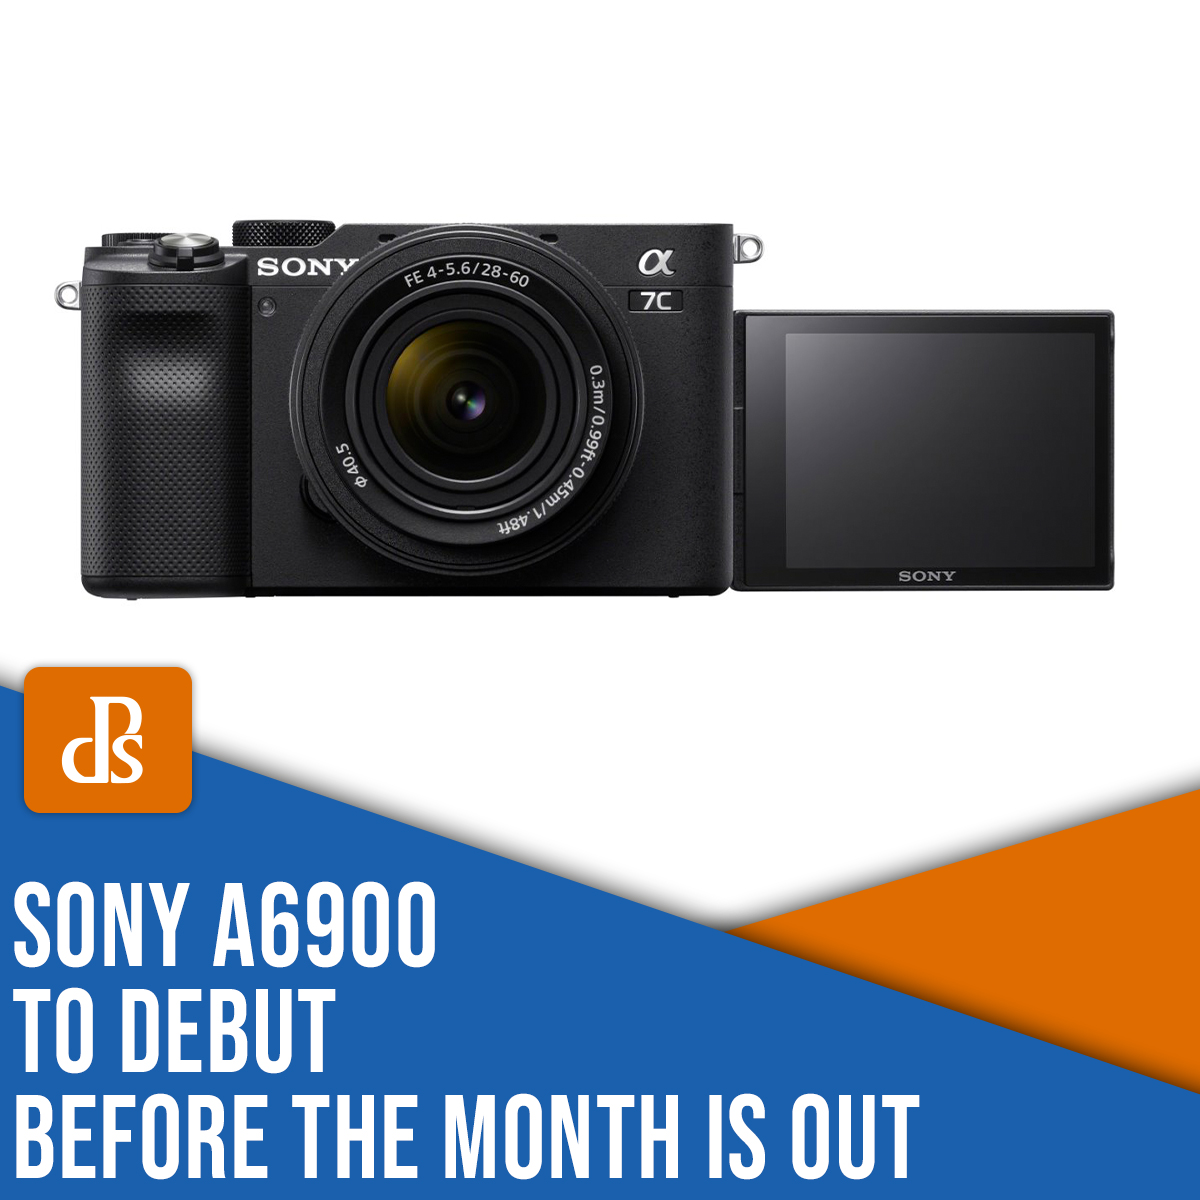 Sony a6900 to debut before the month is out